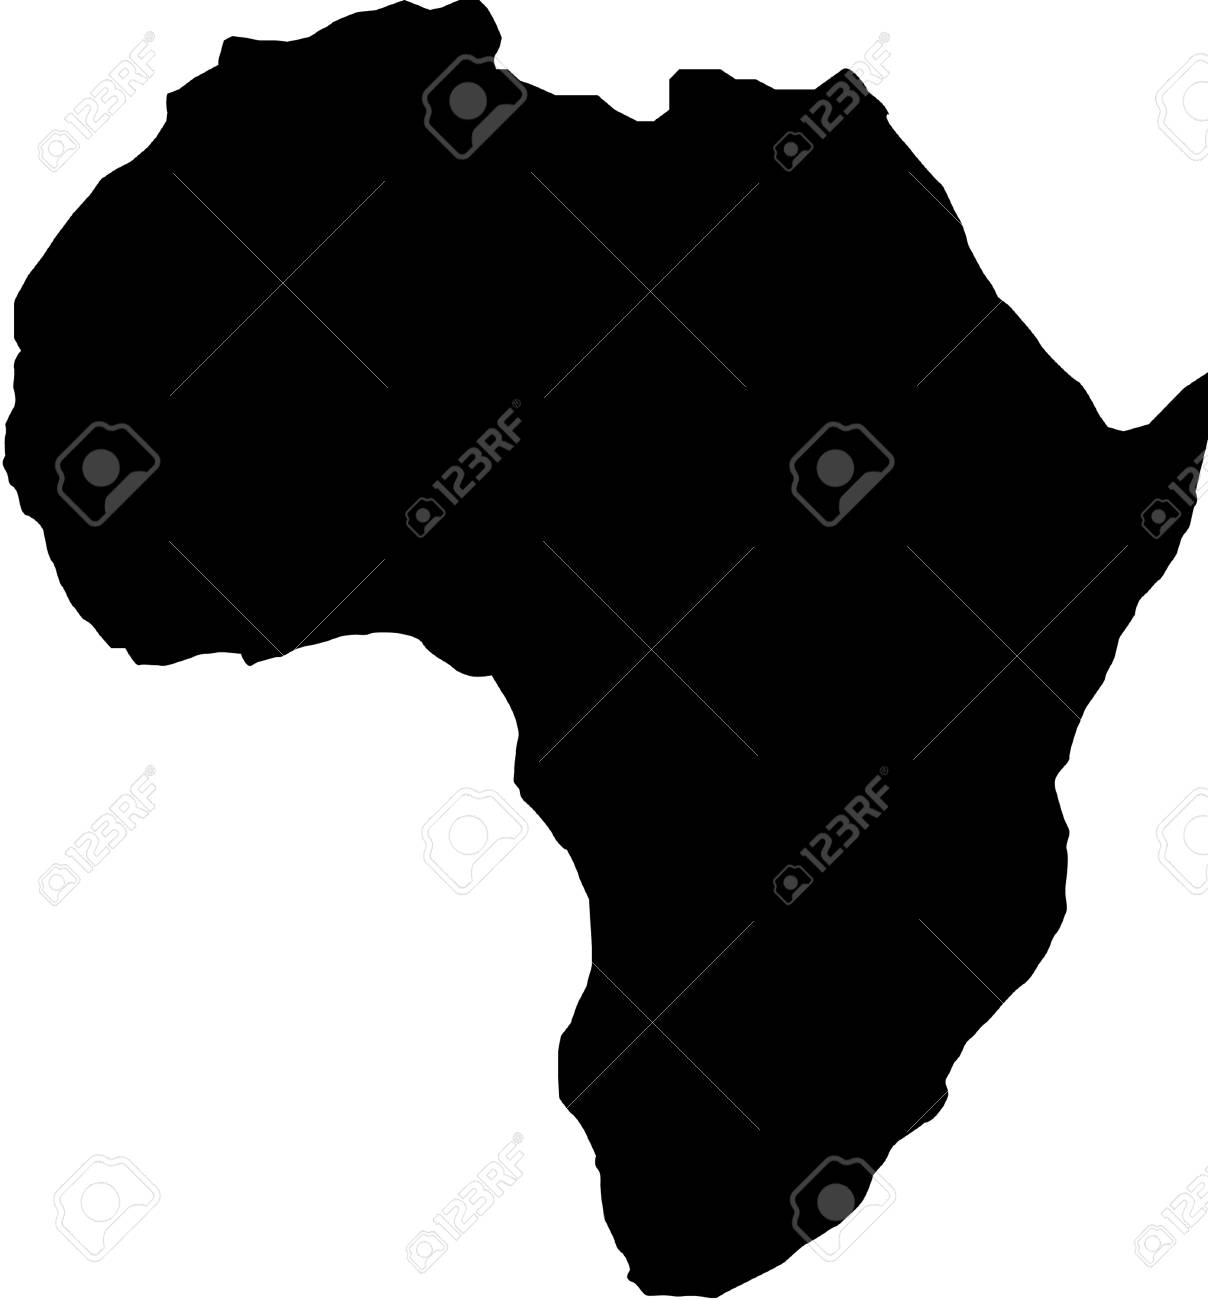 Africa Map Vector Art.Africa Map Silhouette Vector Illustration